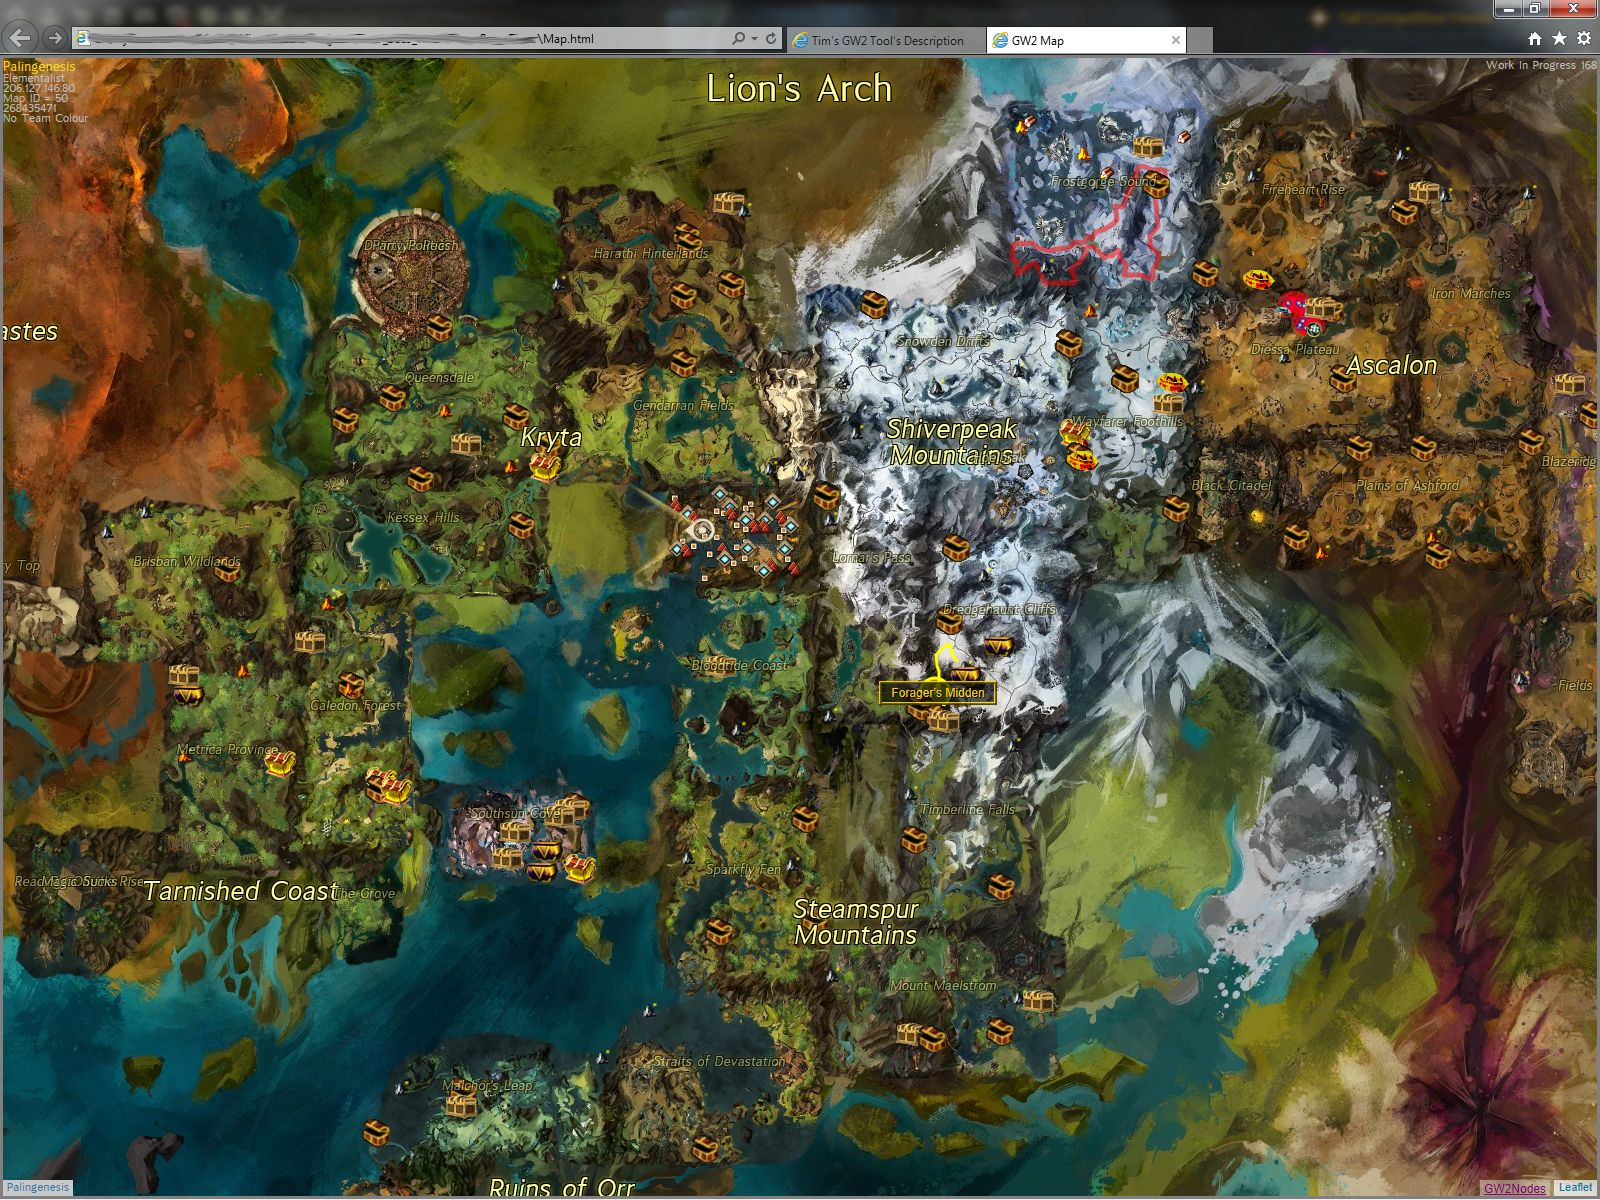 Tim's GW2 Tool's Description on blue mountains forest map, gendarran fields map, caledonian forest map, lornar's pass map, rata sum map, sparkfly fen map, ad d city map, iron marches map, ruins of orr map, timberline falls map, kessex hills map, winter wonderland map, brisban wildlands map, guild wars map, fireheart rise map, canada forest map, malchor's leap map, ontario forest map, straits of devastation map,